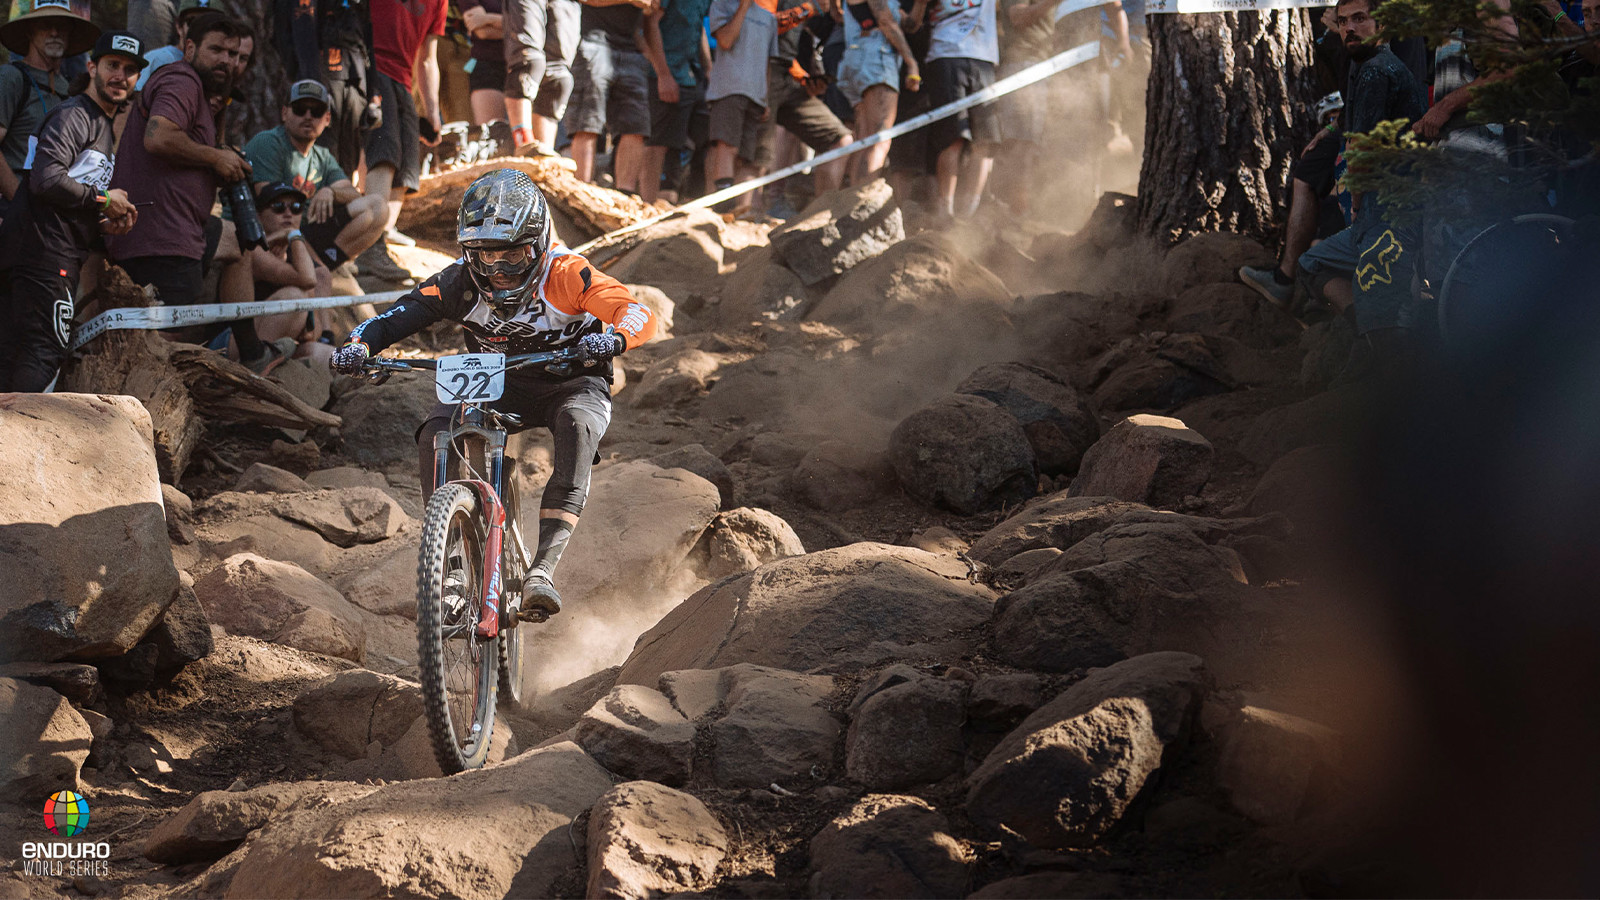 Complete 2020 Enduro World Series Team Rosters and 2021 Calendar